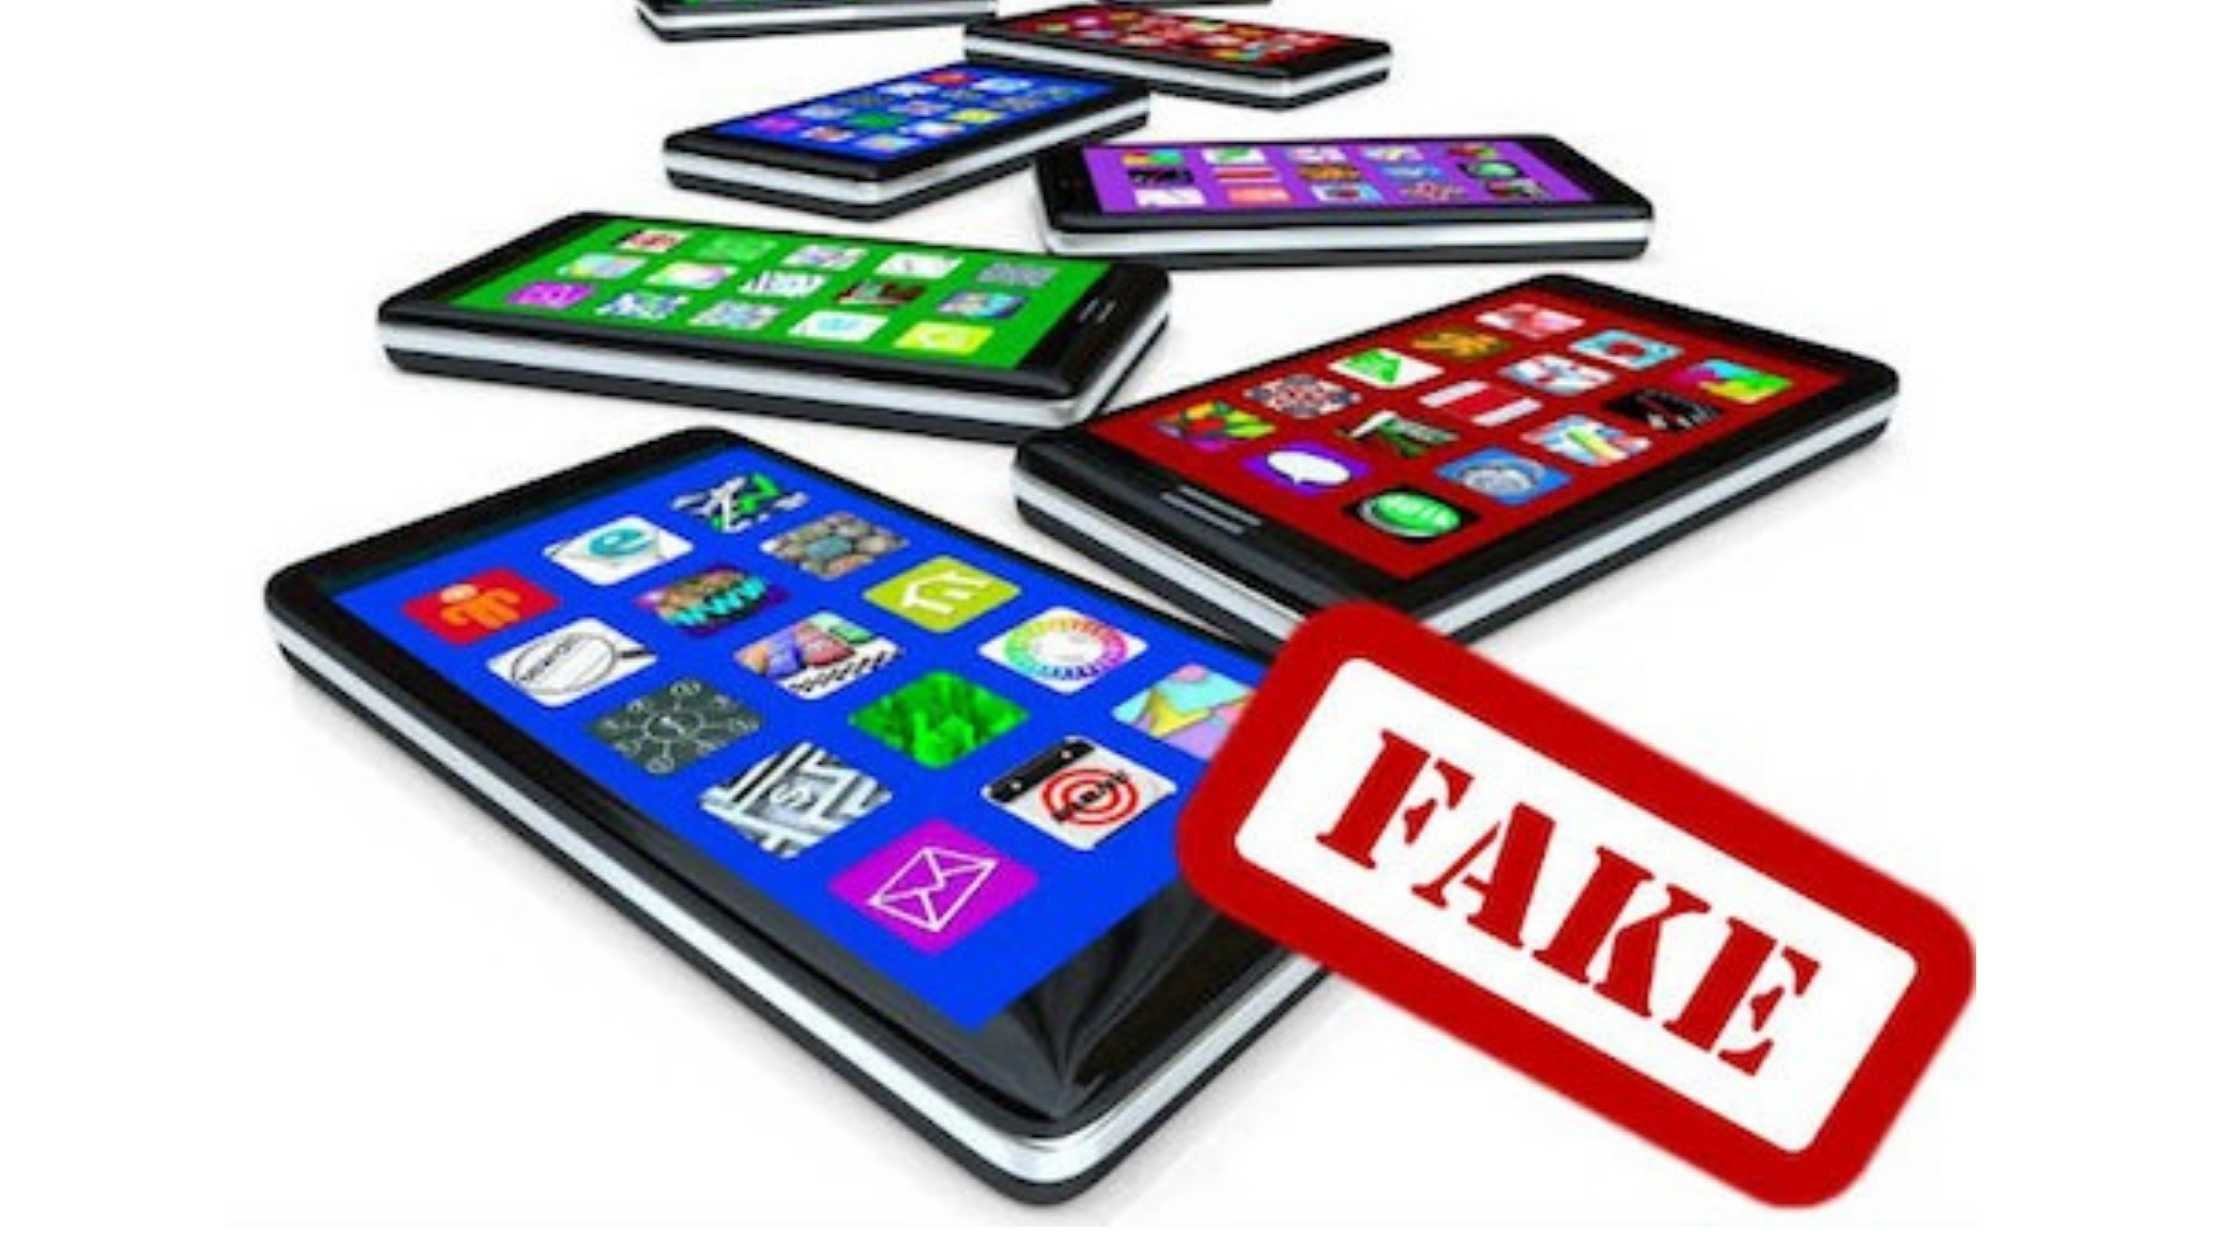 Fake mobile app concept; Graphic of mobile phones showing apps with Fake stamp